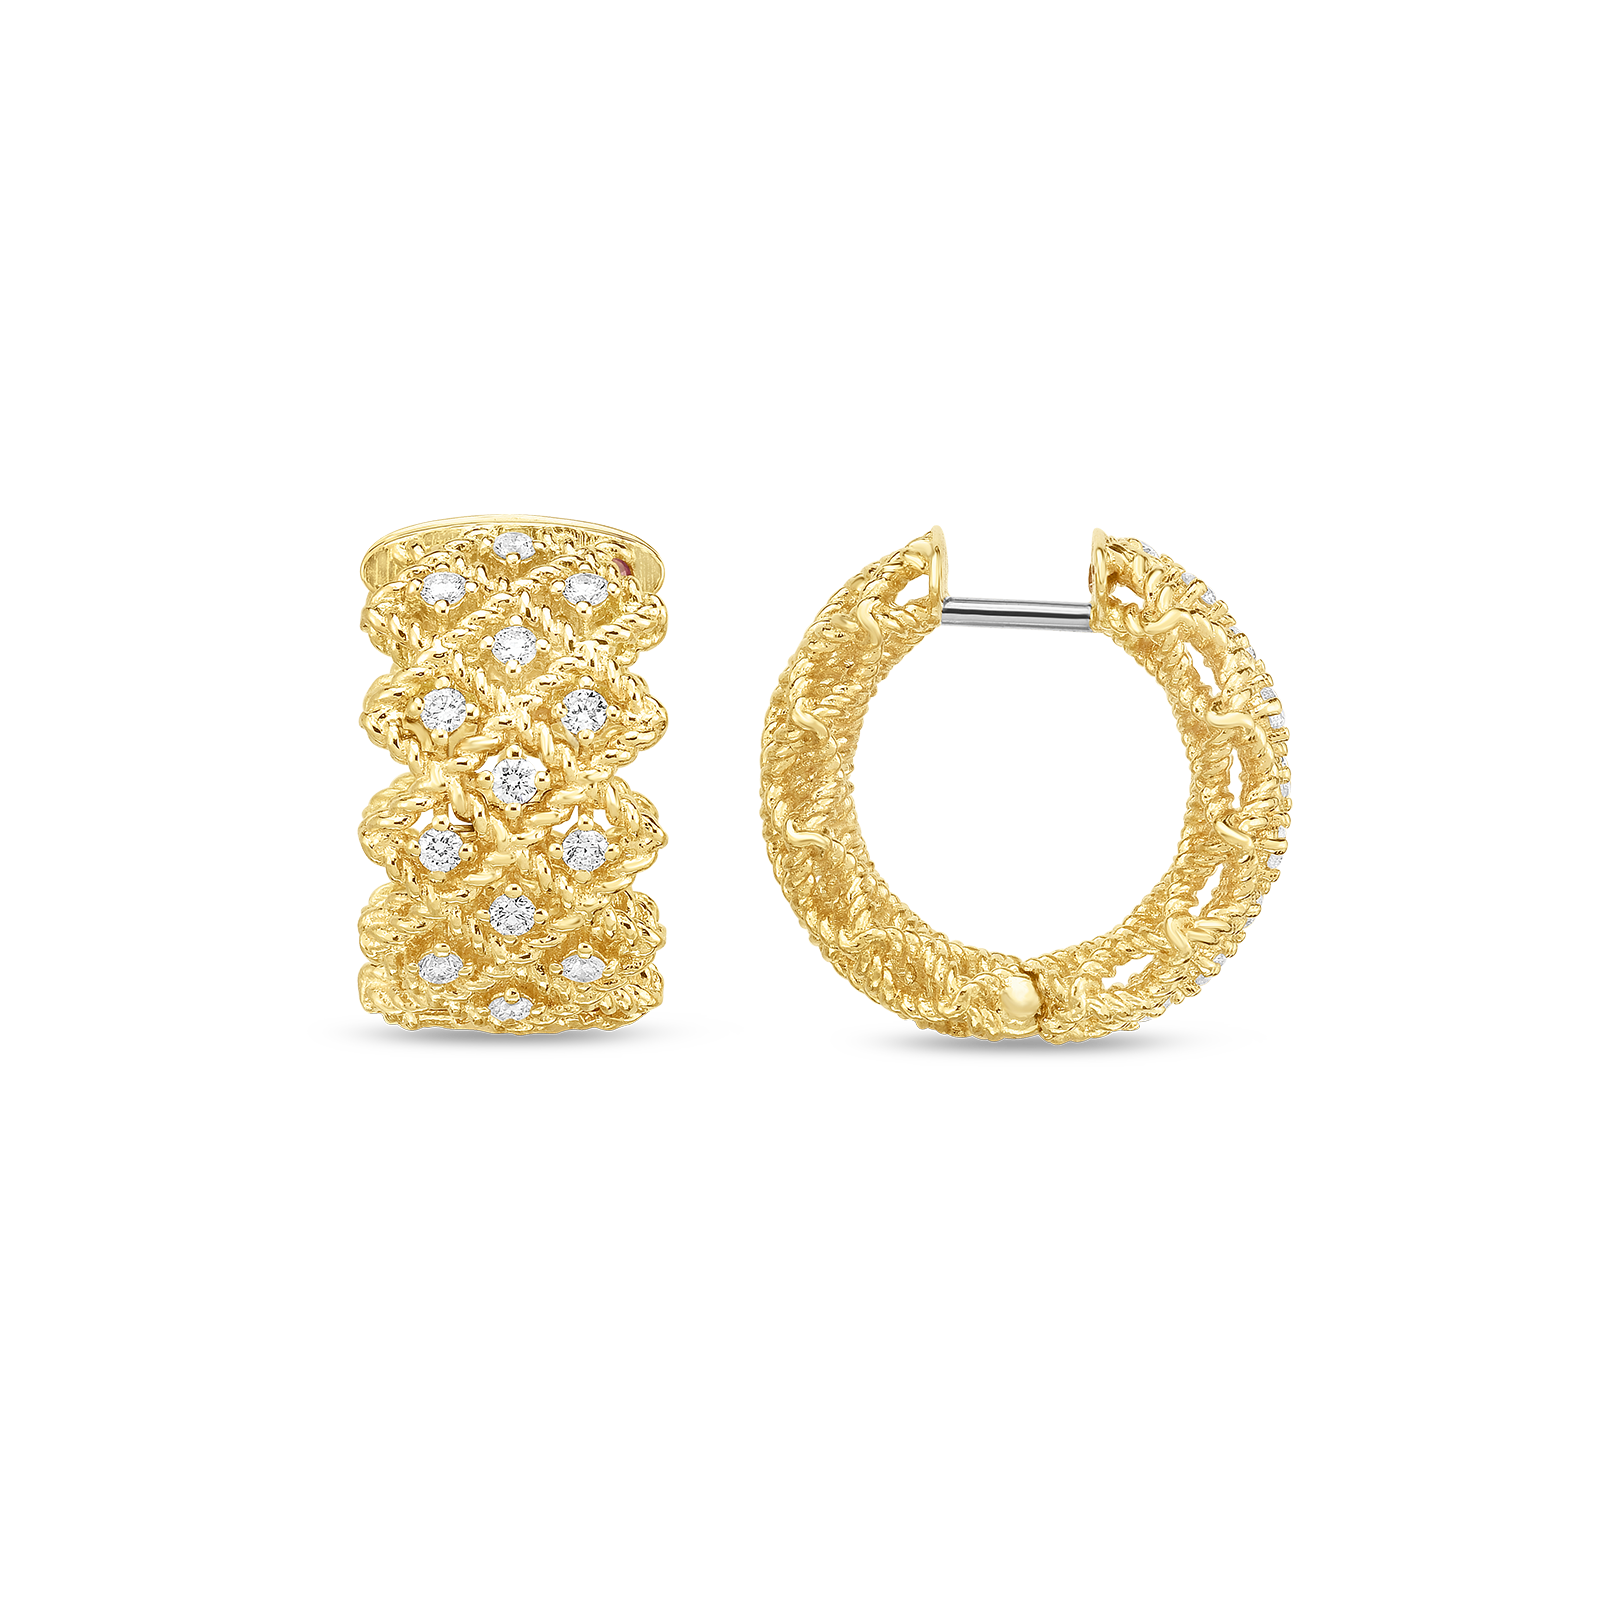 Roberto Coin 18K Gold 3 Row Hoop Earrings With Diamonds